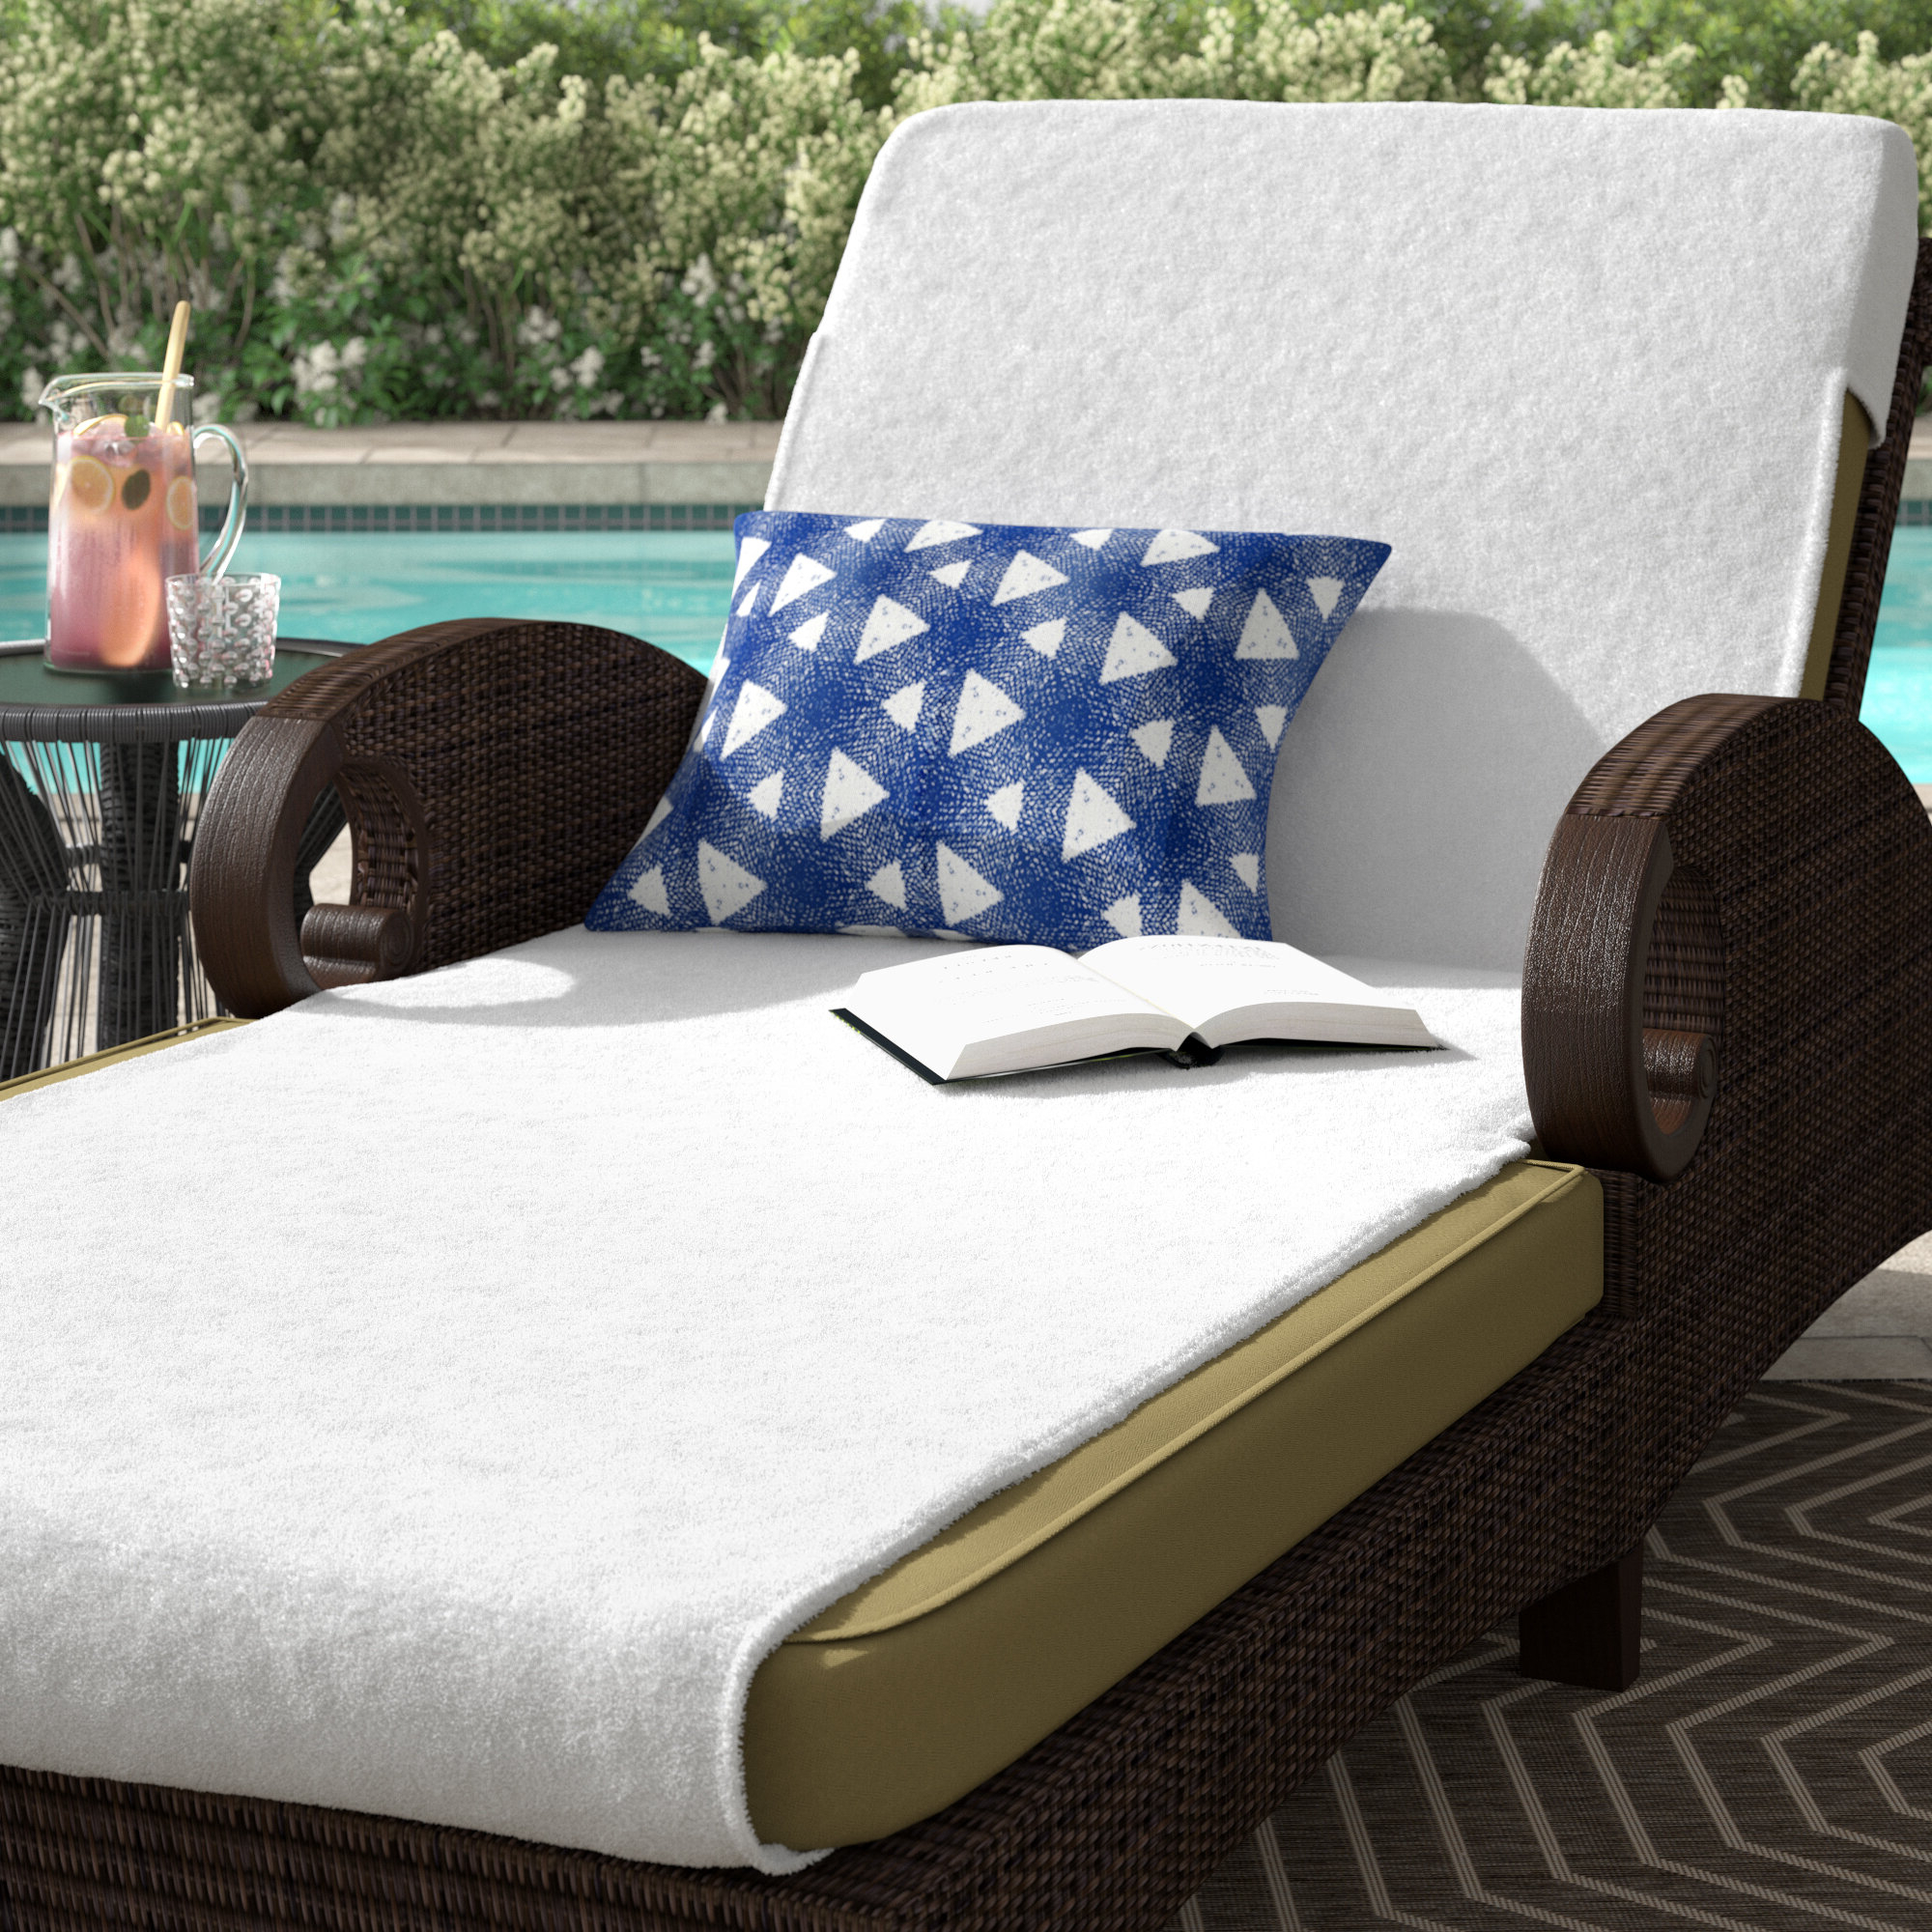 Trendy Jamaica Outdoor Chaise Lounges Intended For Patio Chaise Lounge Cover (View 22 of 25)